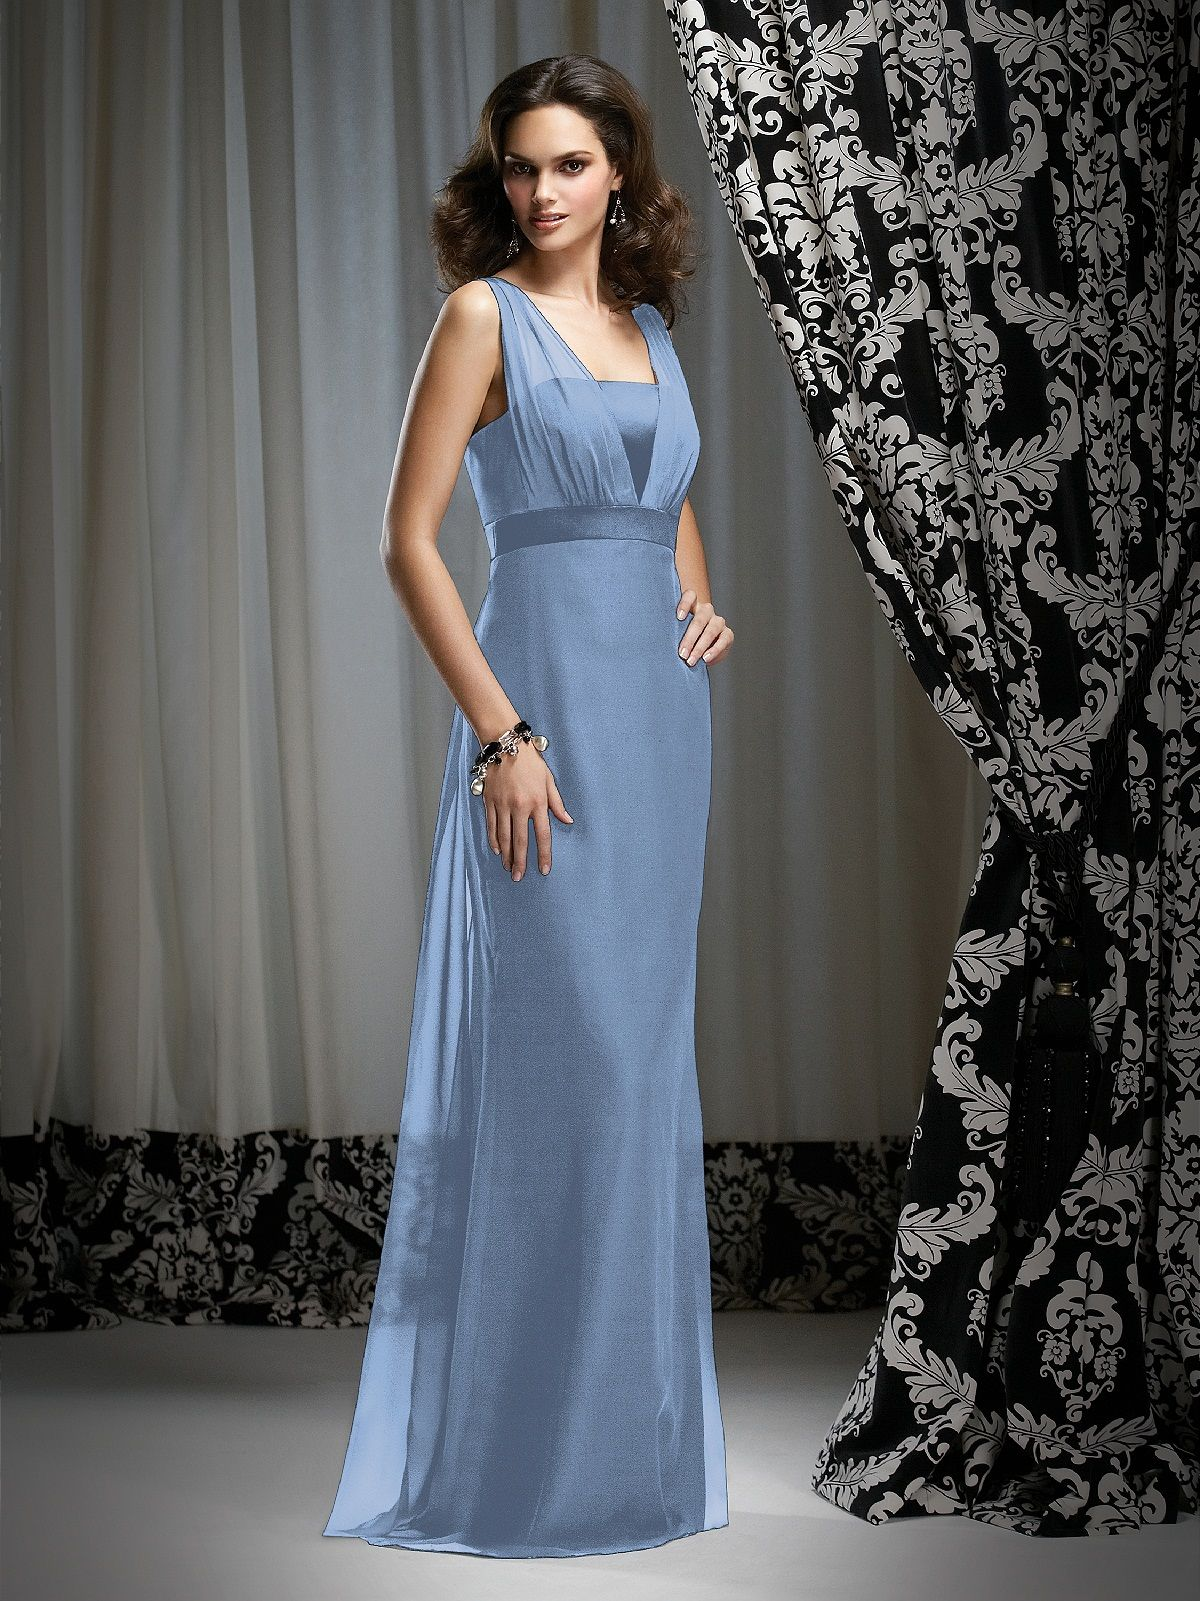 Dessy Bridesmaid Style 2732 - windsor blue chiffon this style is ...